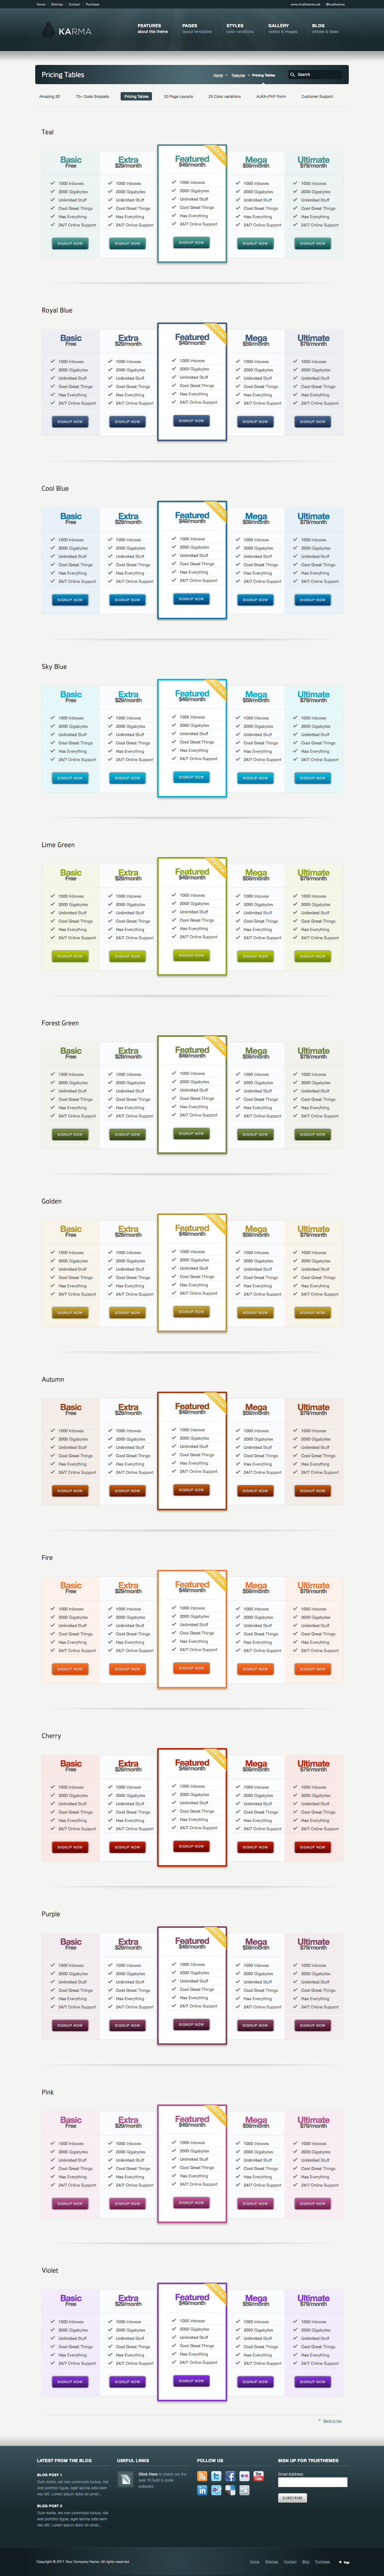 Karma - Responsive Clean Website Template - Karma comes with 13 gorgeous pricing tables for all of your selling needs.